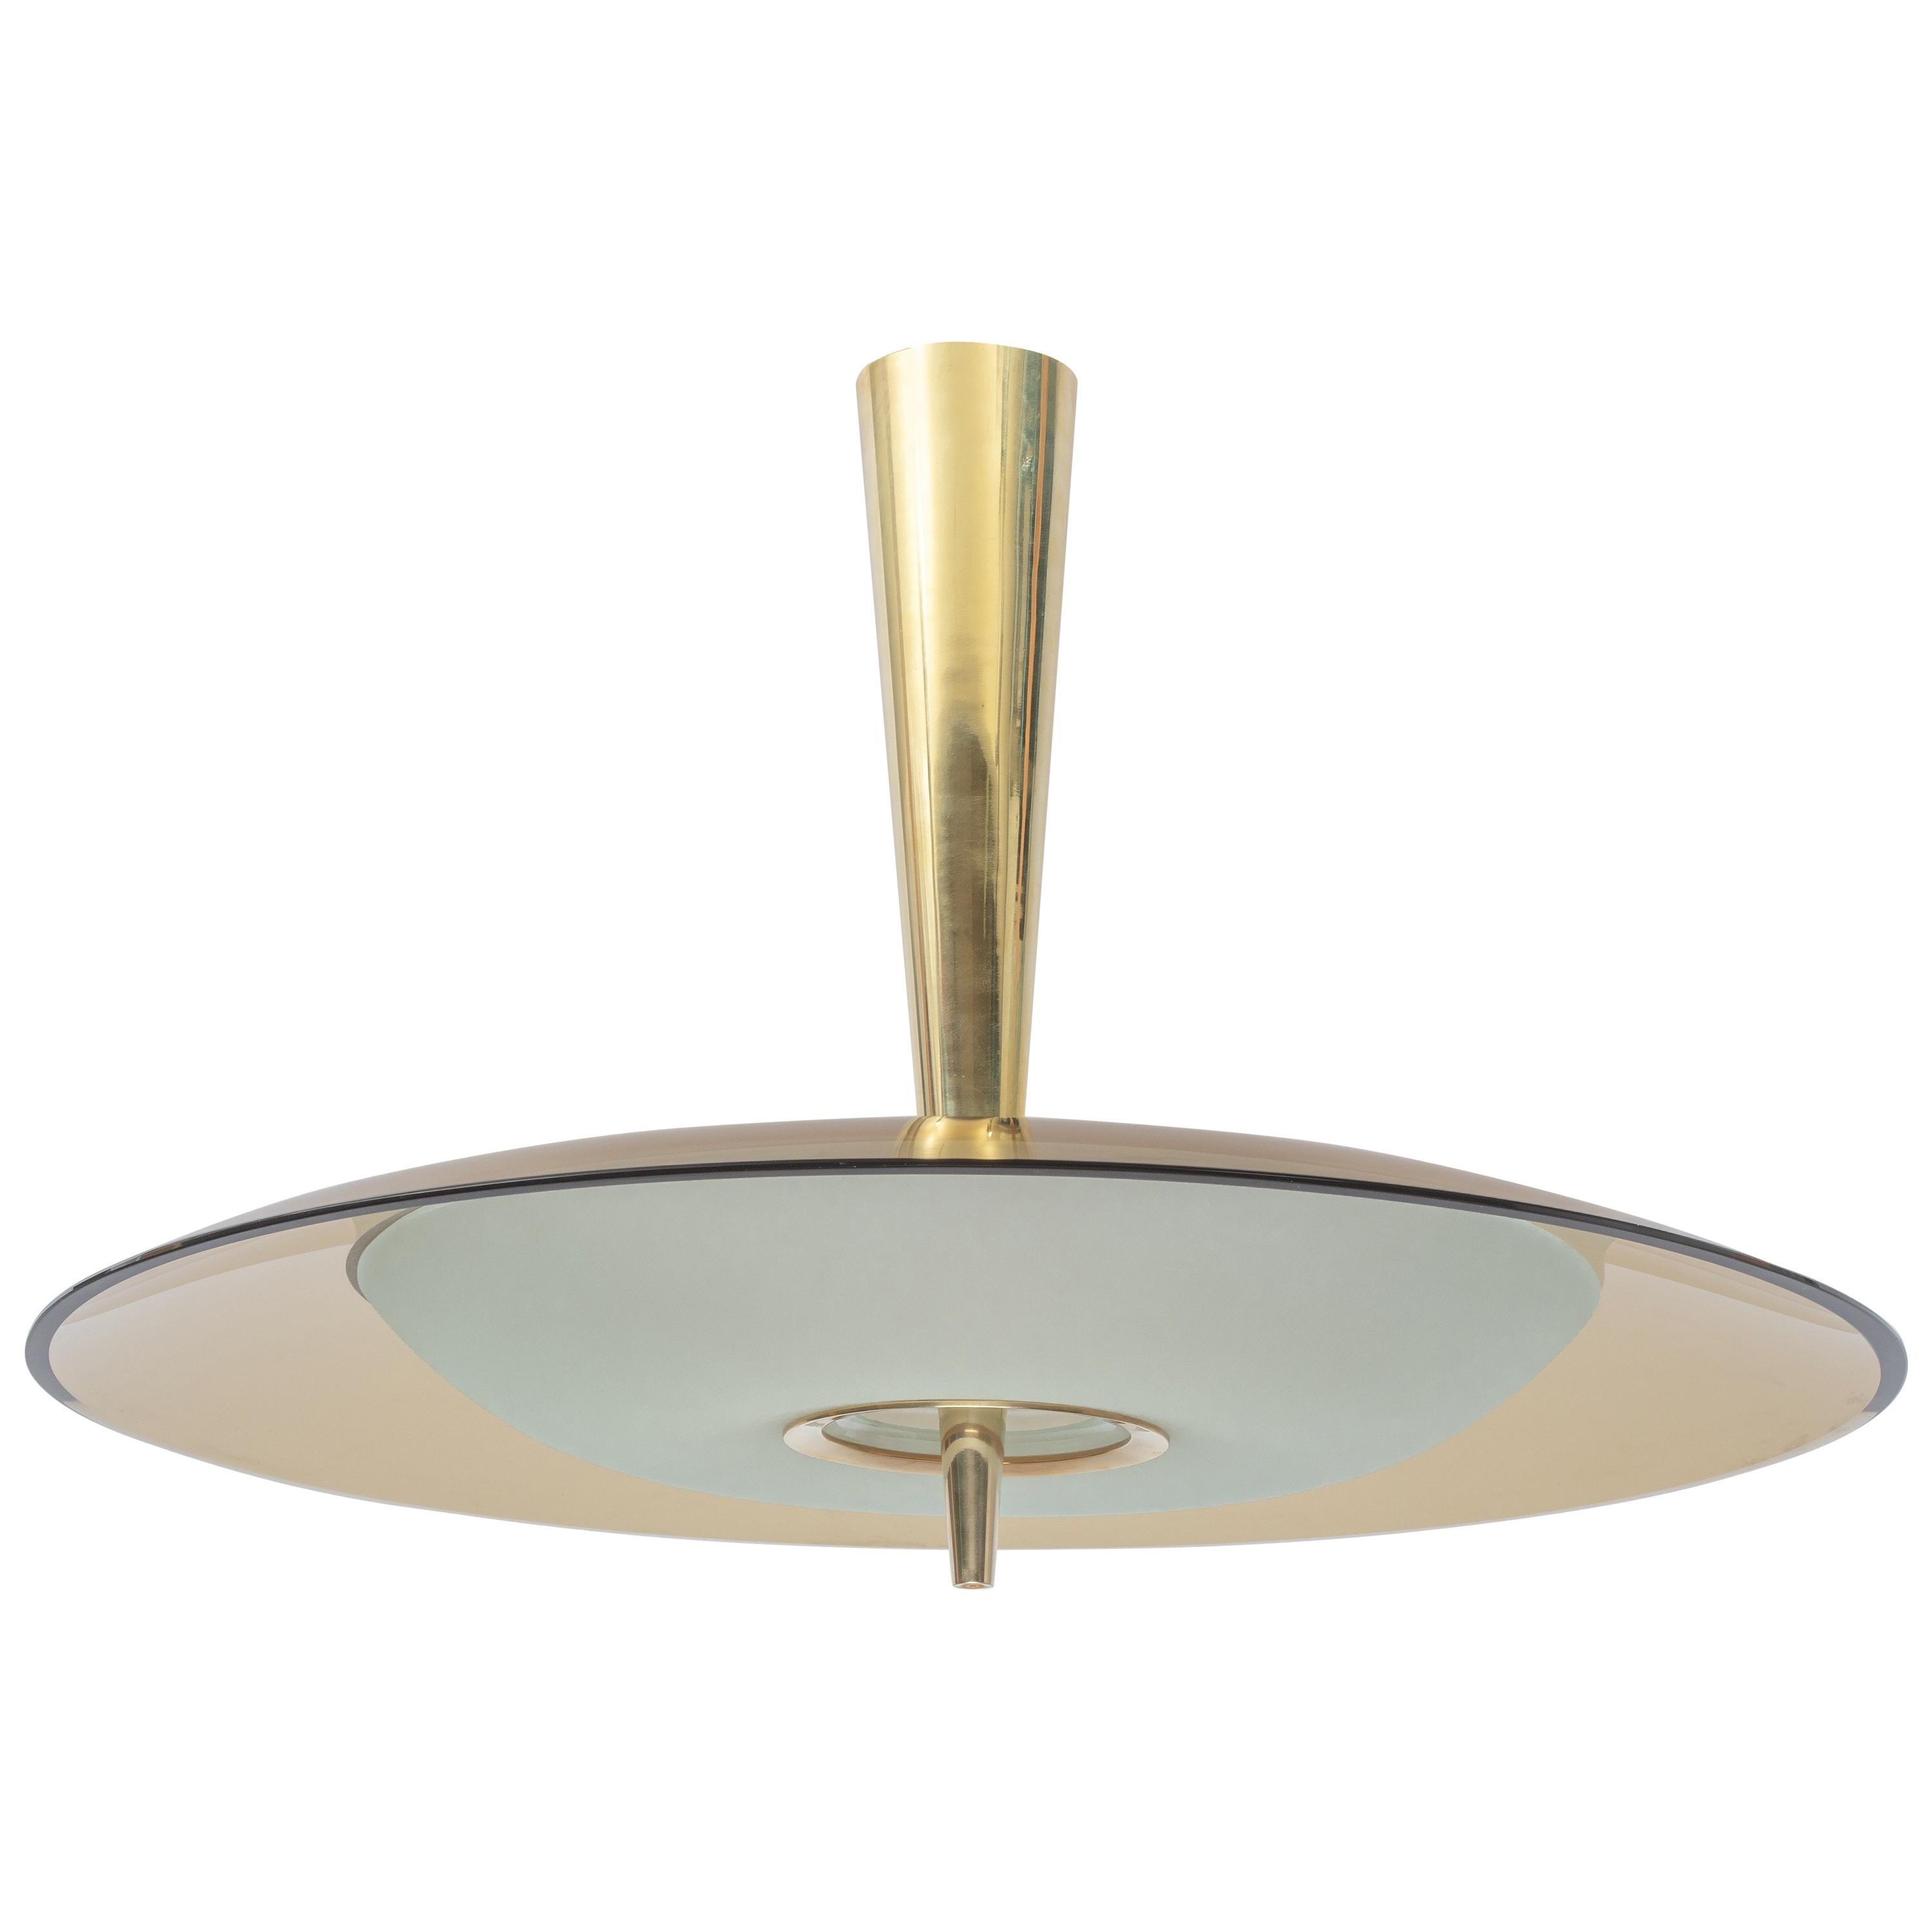 Exquisite Max Ingrand for Fontana Arte Round Glass Chandelier, Italy 1950's